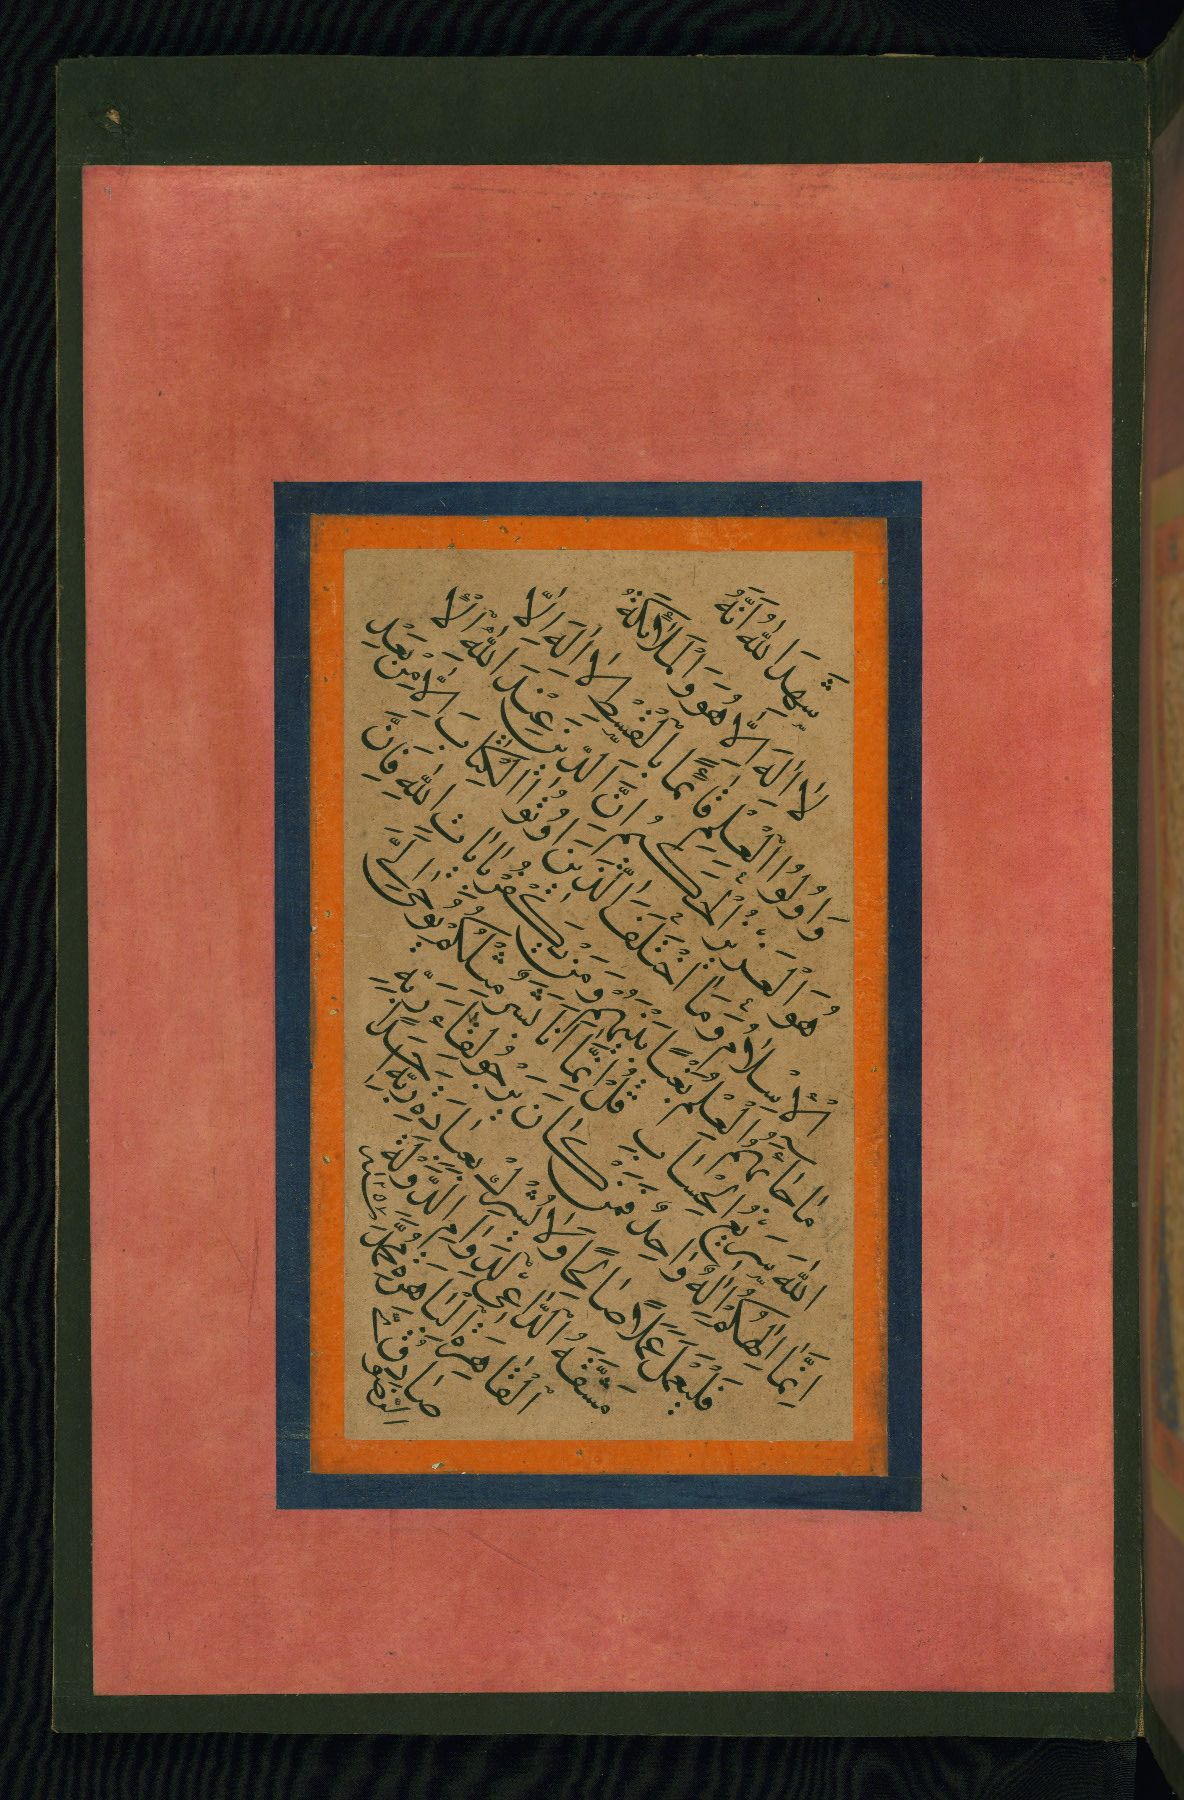 This calligraphy page is written in Nayrīzīstyle naskh